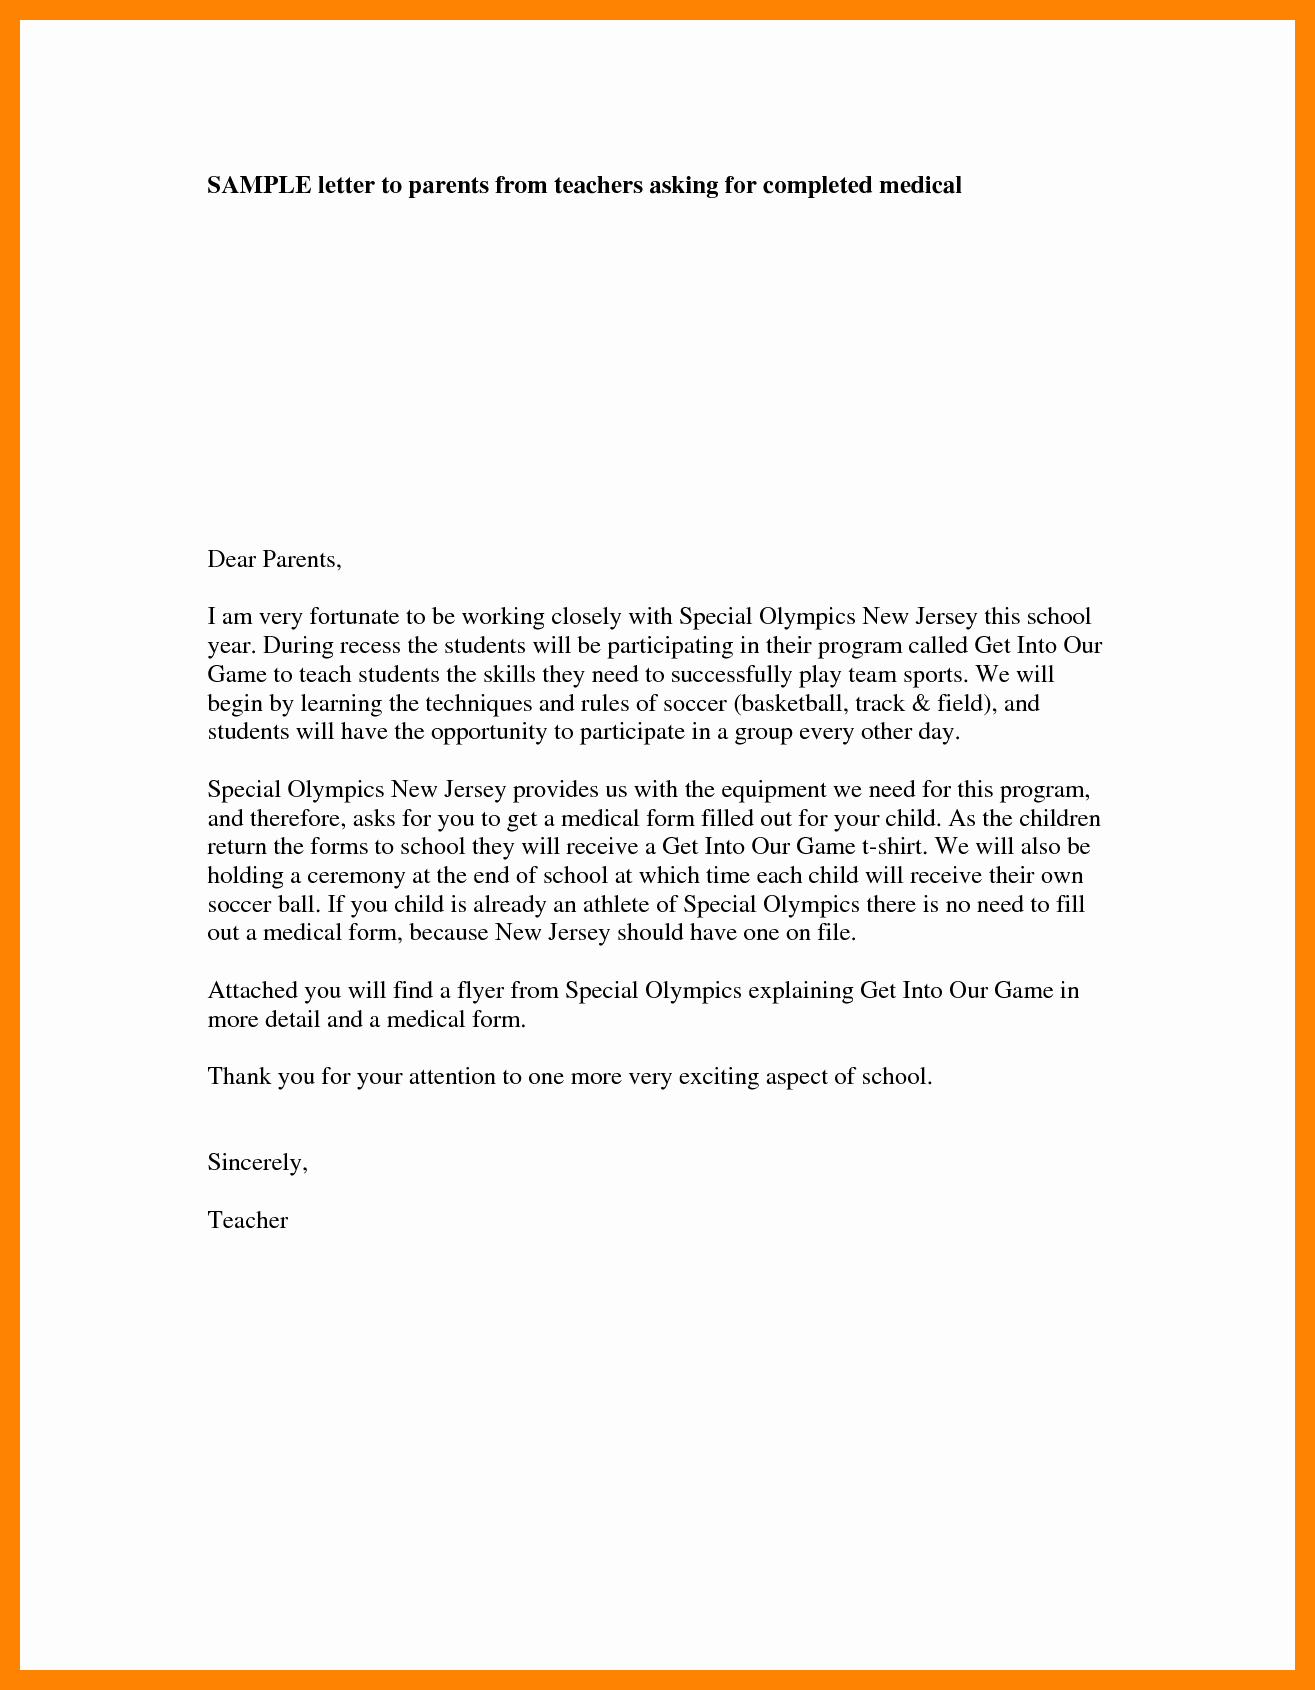 Self Introduction Letter Sample Lovely 4 Teacher Introduction Letter to Parents Template